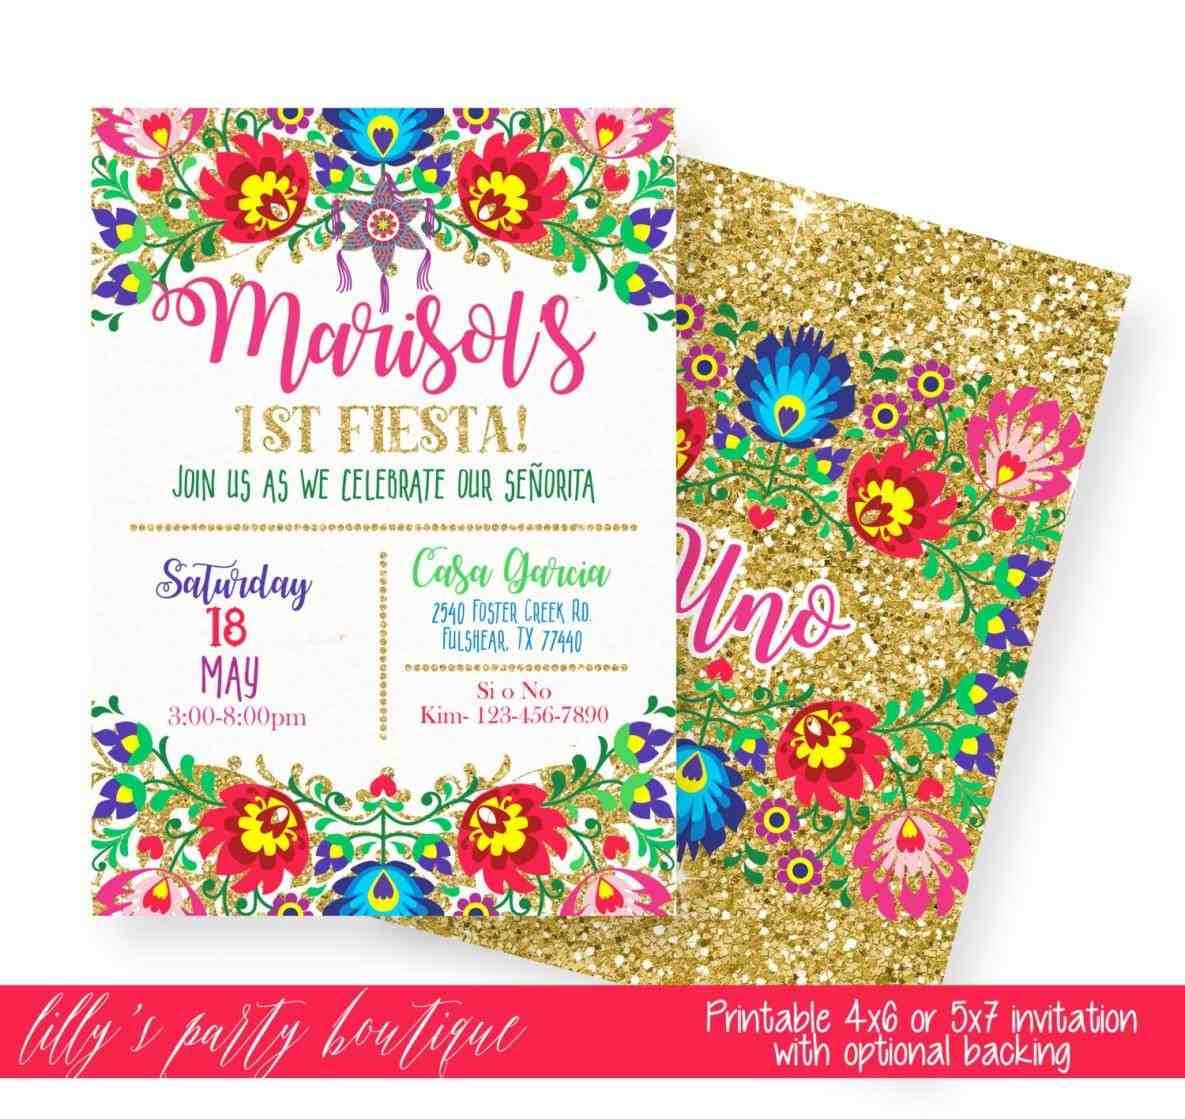 Full Size Of Colorsevite Birthday Invitation Message Together With Evite Frozen Invitations As